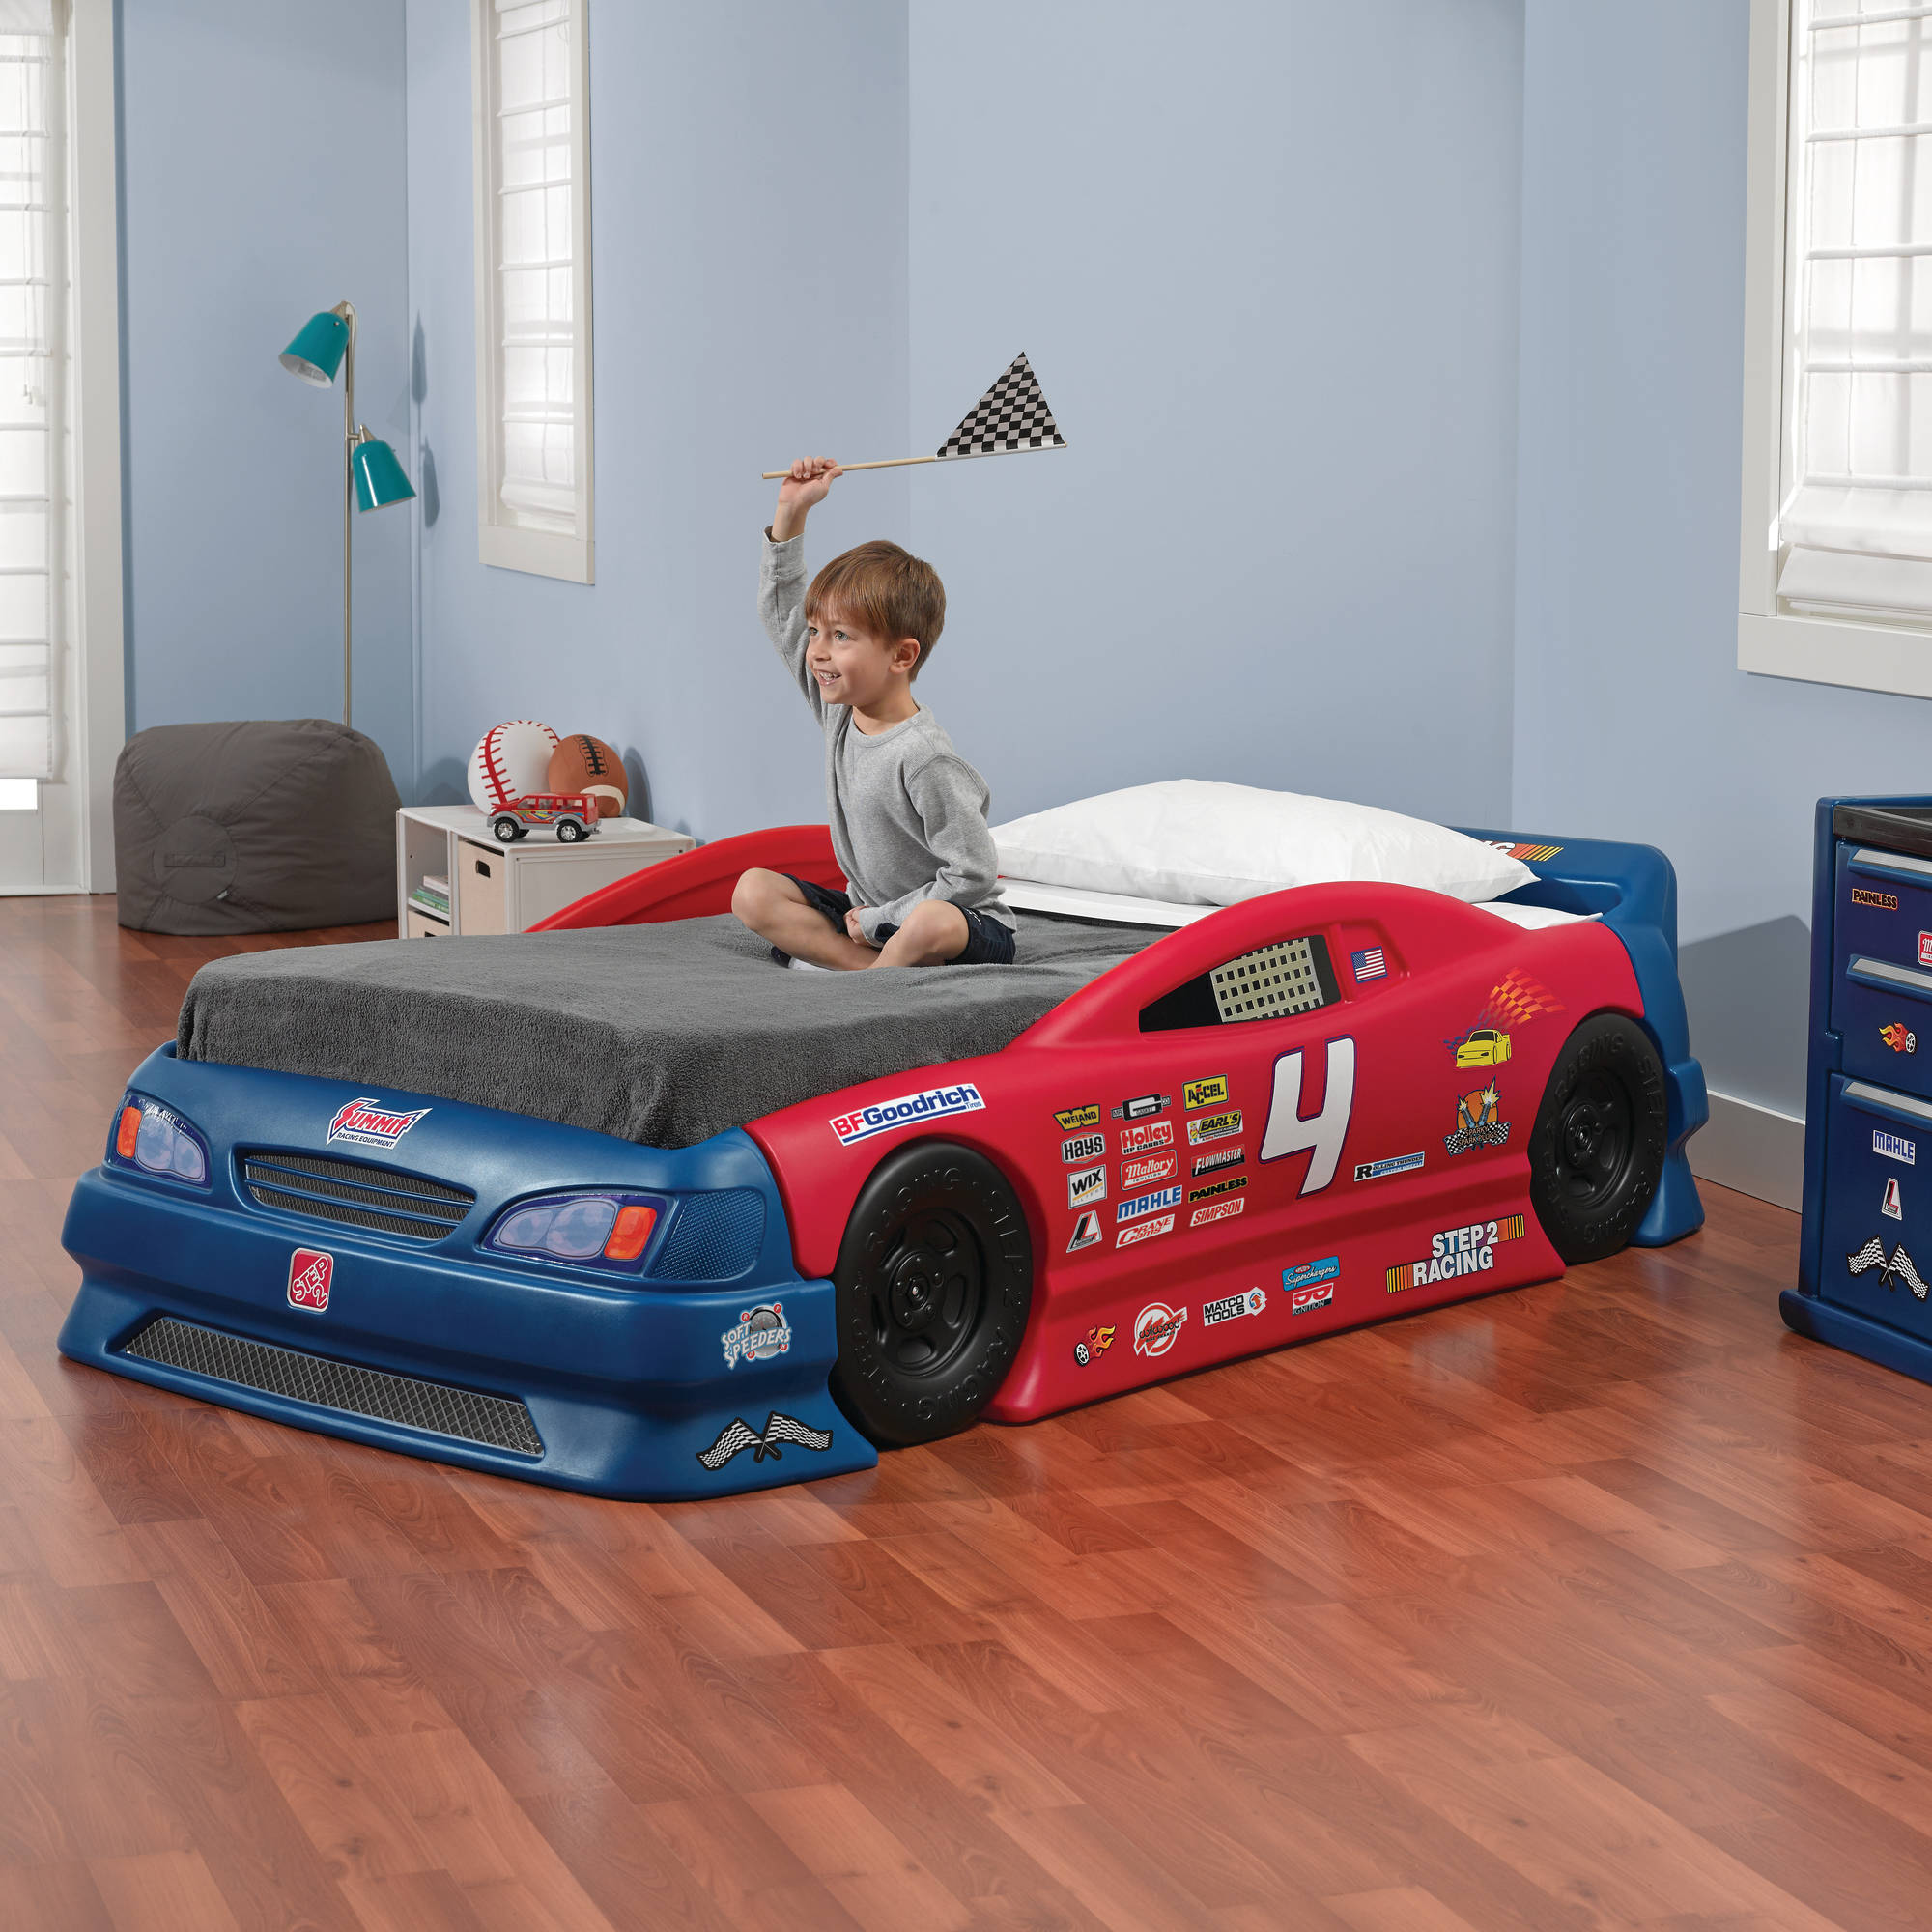 costway new kids race car bed toddler bed boys child furniture bedroom red wooden walmartcom